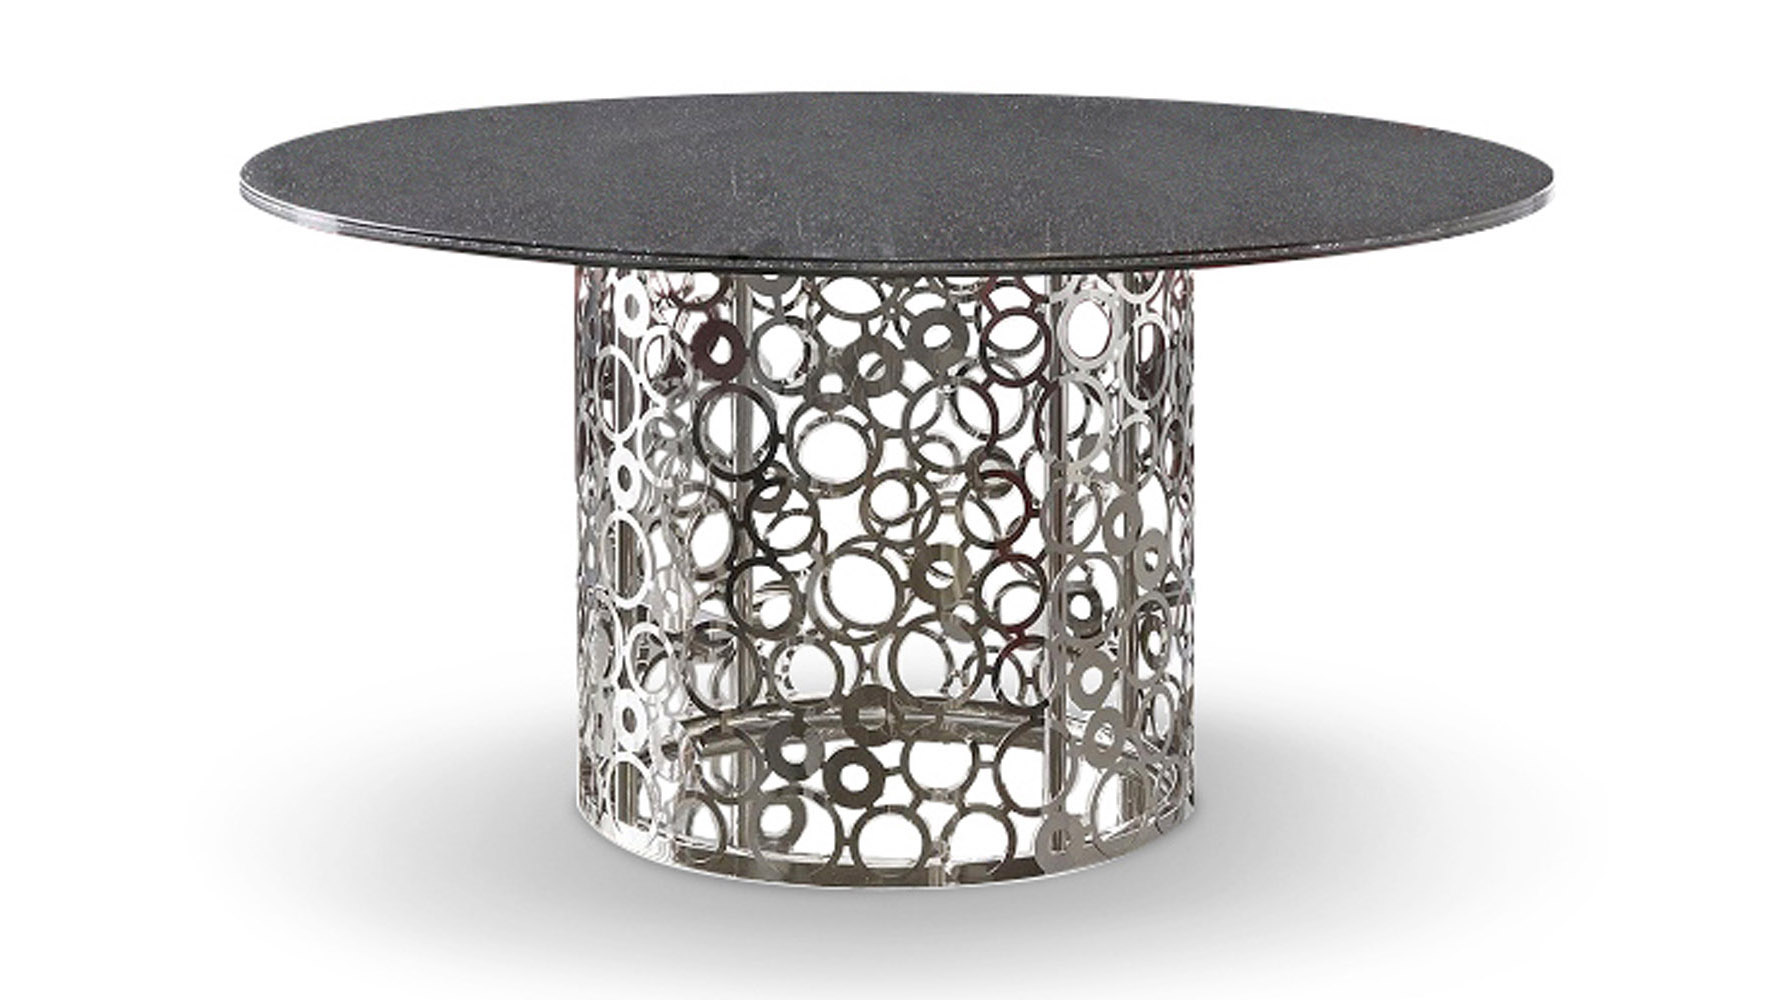 Modern Round Glass Dining Table Galileo 60 Inch Smoked Crackle Glass Dining Table